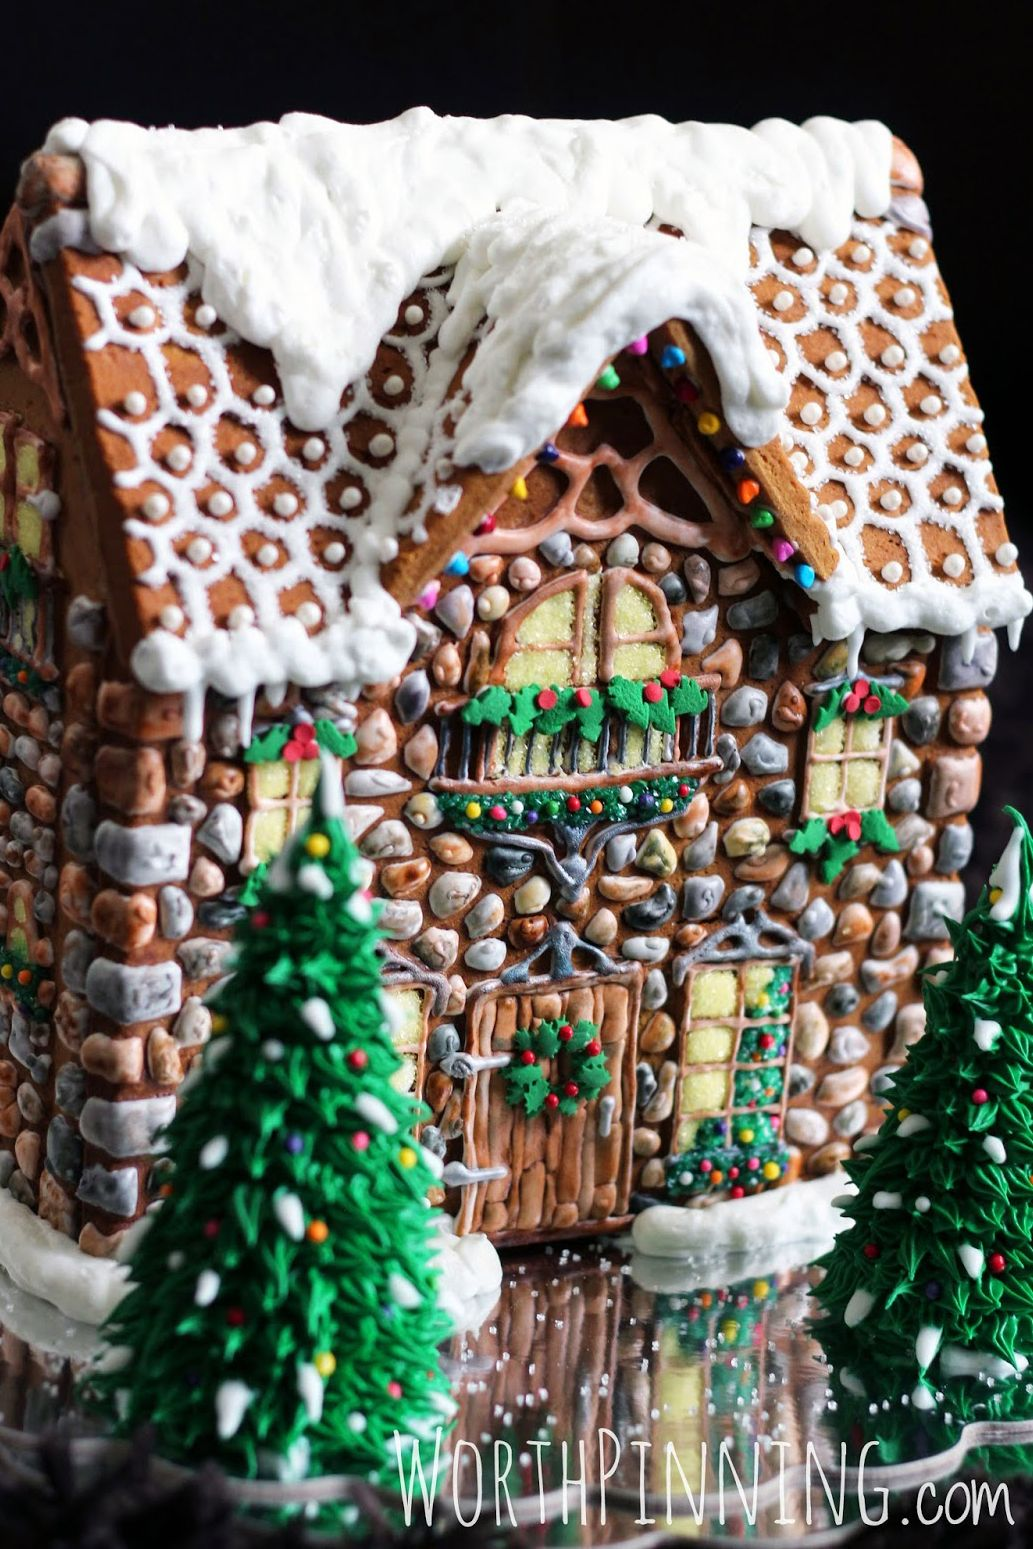 40 amazing gingerbread houses pictures of gingerbread house design ideas - Gingerbread Christmas Decorations Beautiful To Look